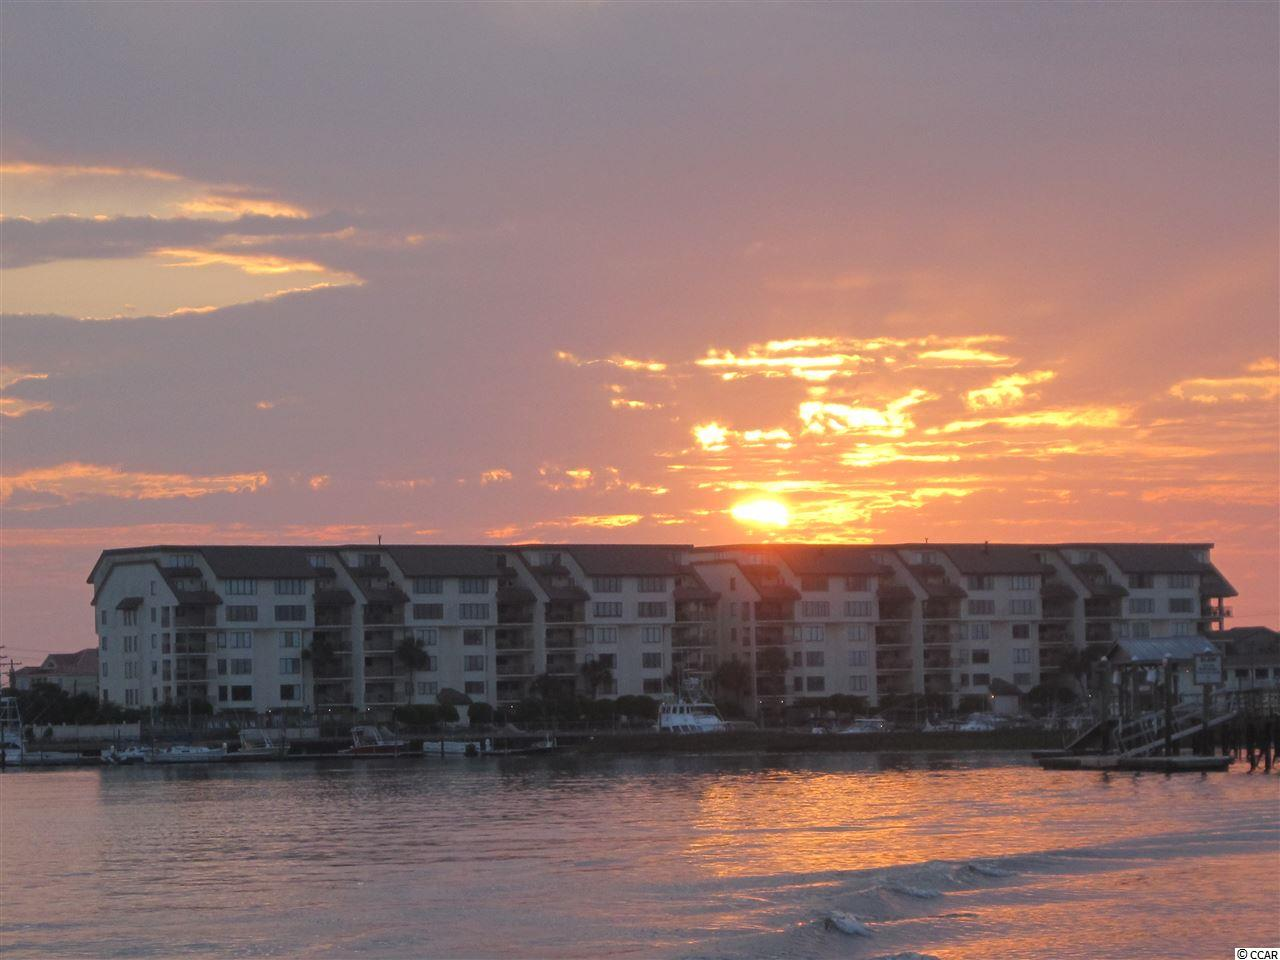 Sunrises and sunsets from your balcony, the best of both worlds! Marlin Quay 201 offers luxury and comfort in a marina setting with pools and an elevator. Enjoy hours of relaxing on the beach, just across the street, or by one of two onsite pools. This two bedroom, two bath condominium has been fully updated, it is a true turn key property. The family room is bright and airy with stylish, yet comfortable furniture with a coastal undertone. The kitchen has all the upgrades including granite countertops and stainless appliances. The bathrooms have also been updated. This inviting beach getaway comes with exterior storage closet, private parking and an assigned parking space. Schedule your private showing soon!